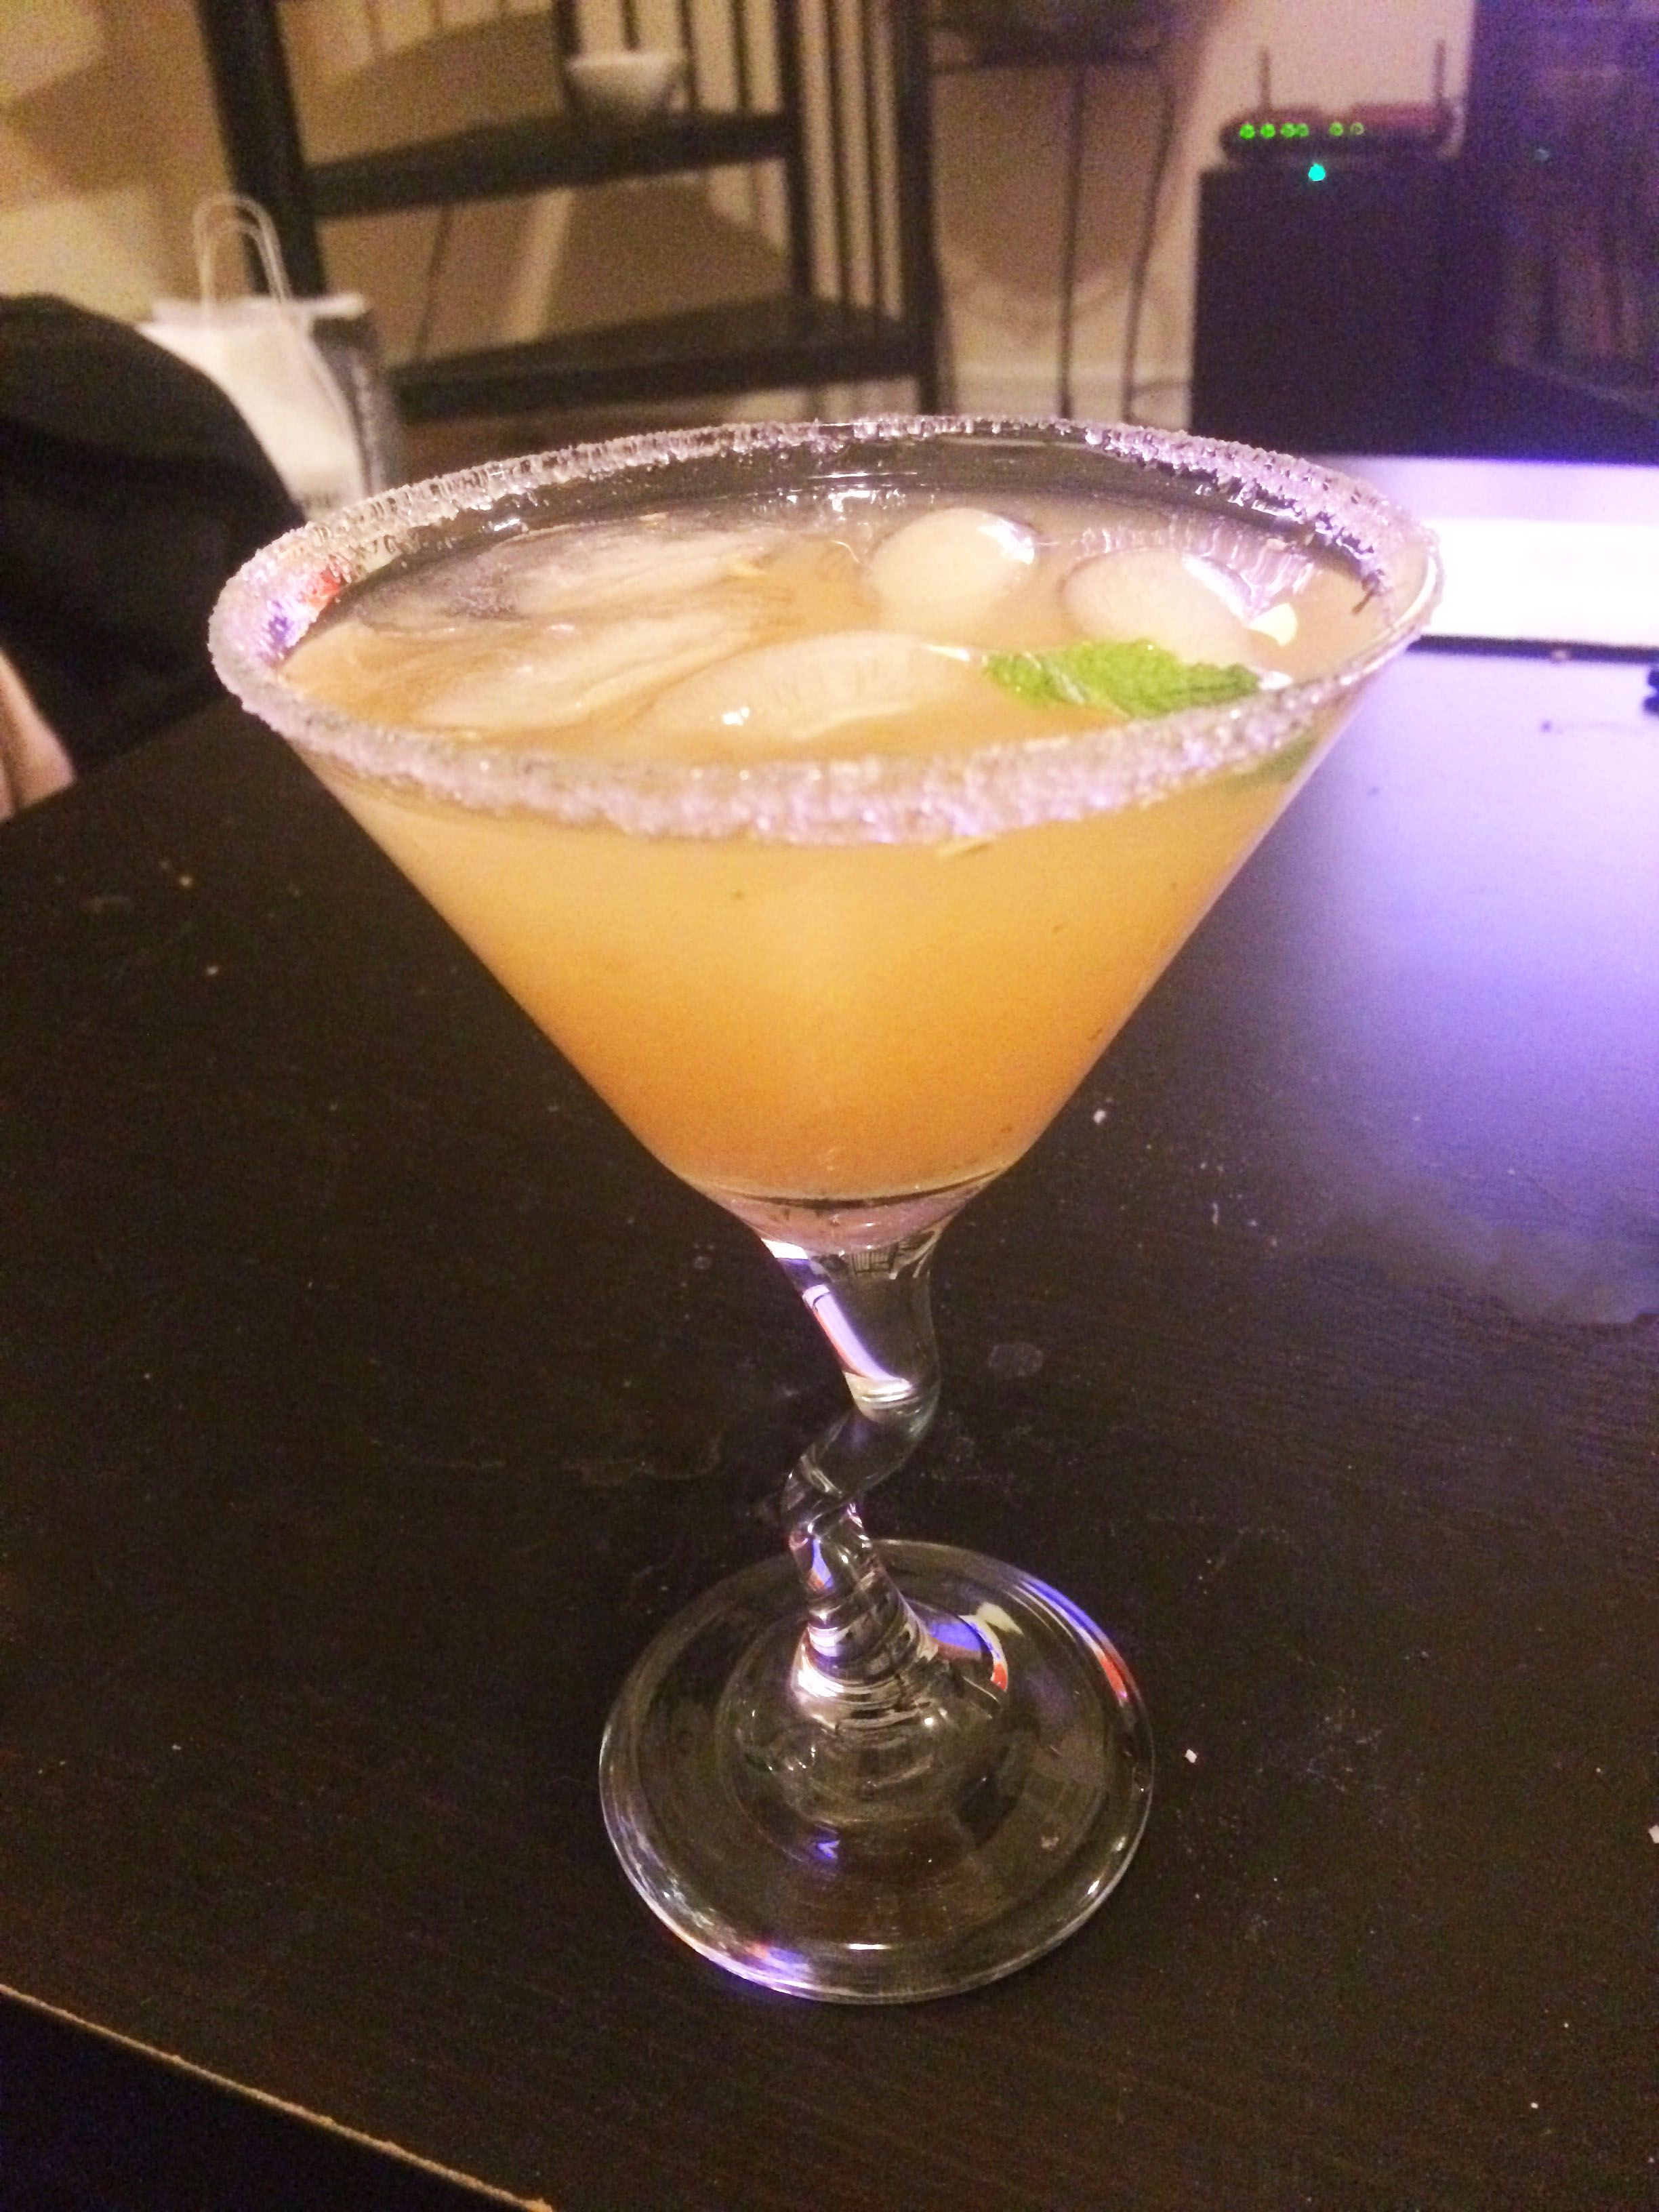 #fancydrinkfriday The Pepper Blossom